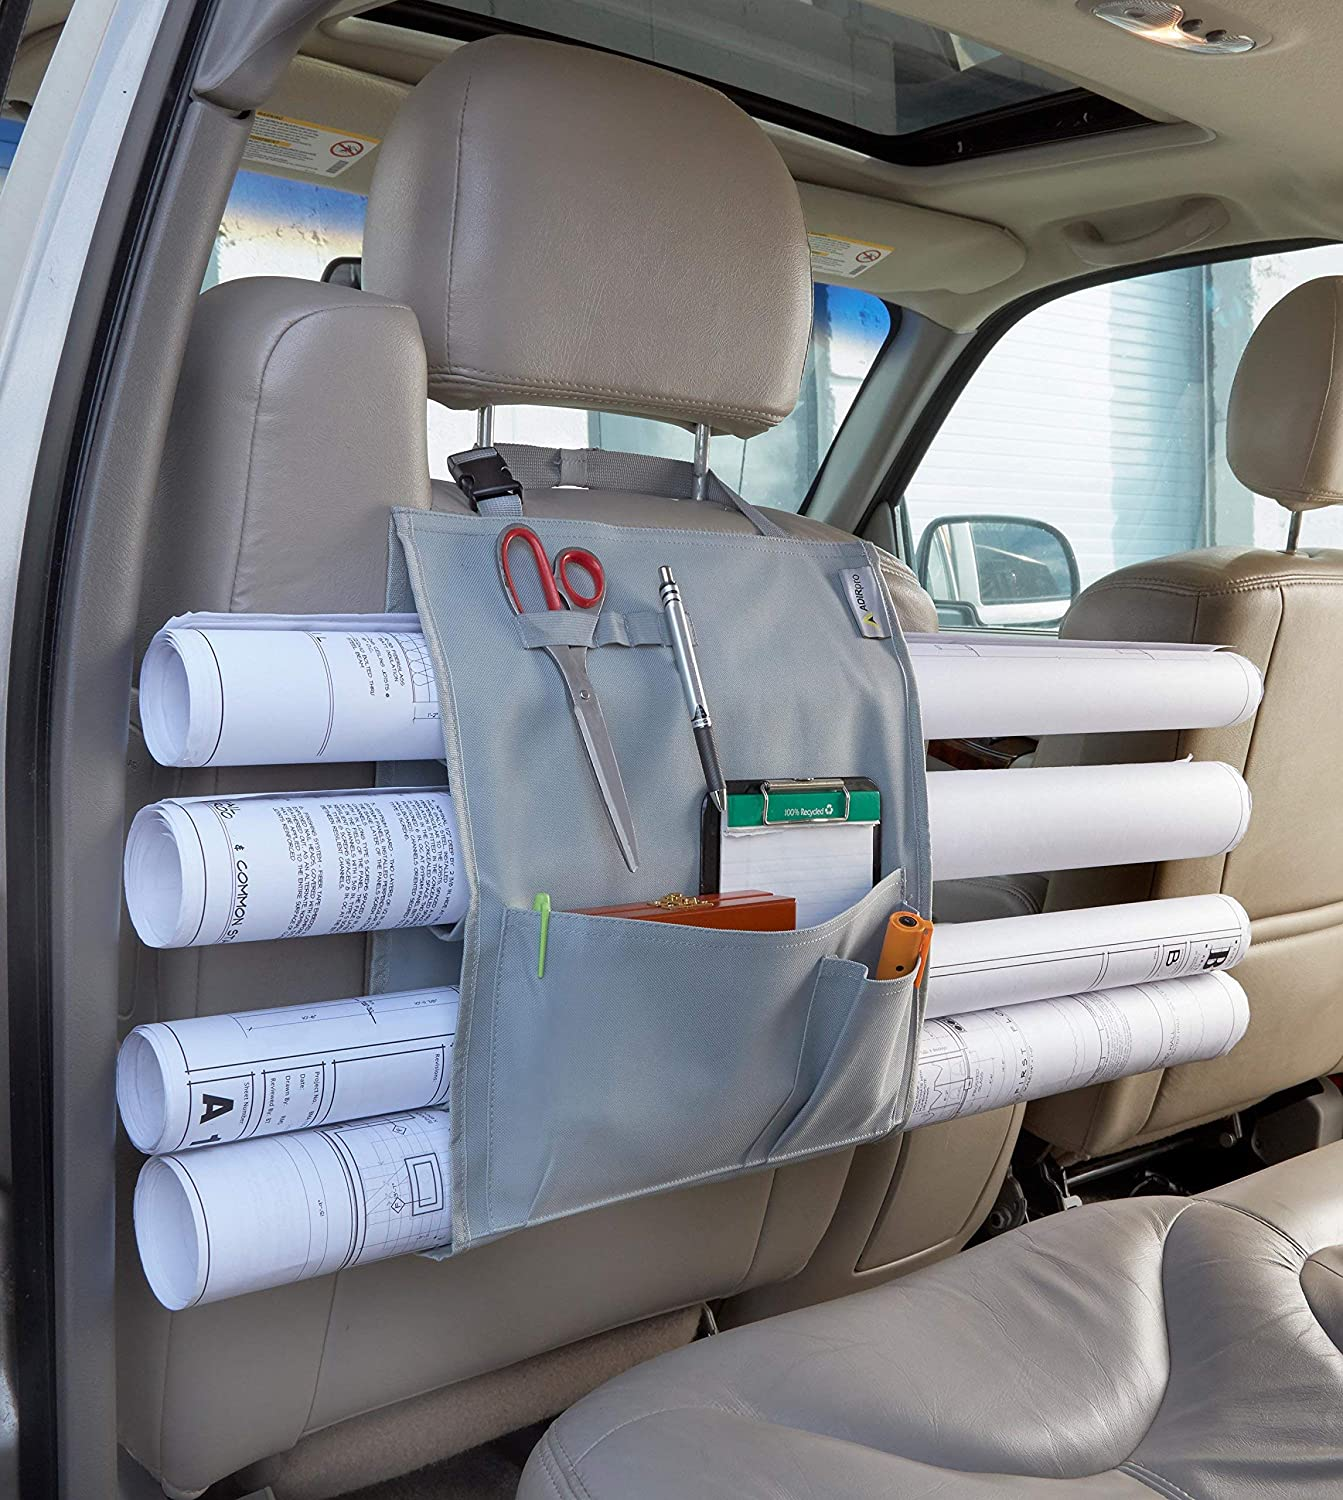 Amazon Com Adir Corp Plans Car Holder Blueprints Car Holder Maps Car Holder Drawings Car Holder Artwork Car Holder Posters Car Holder Document Car Holder Car Organizer With Pockets Office Products